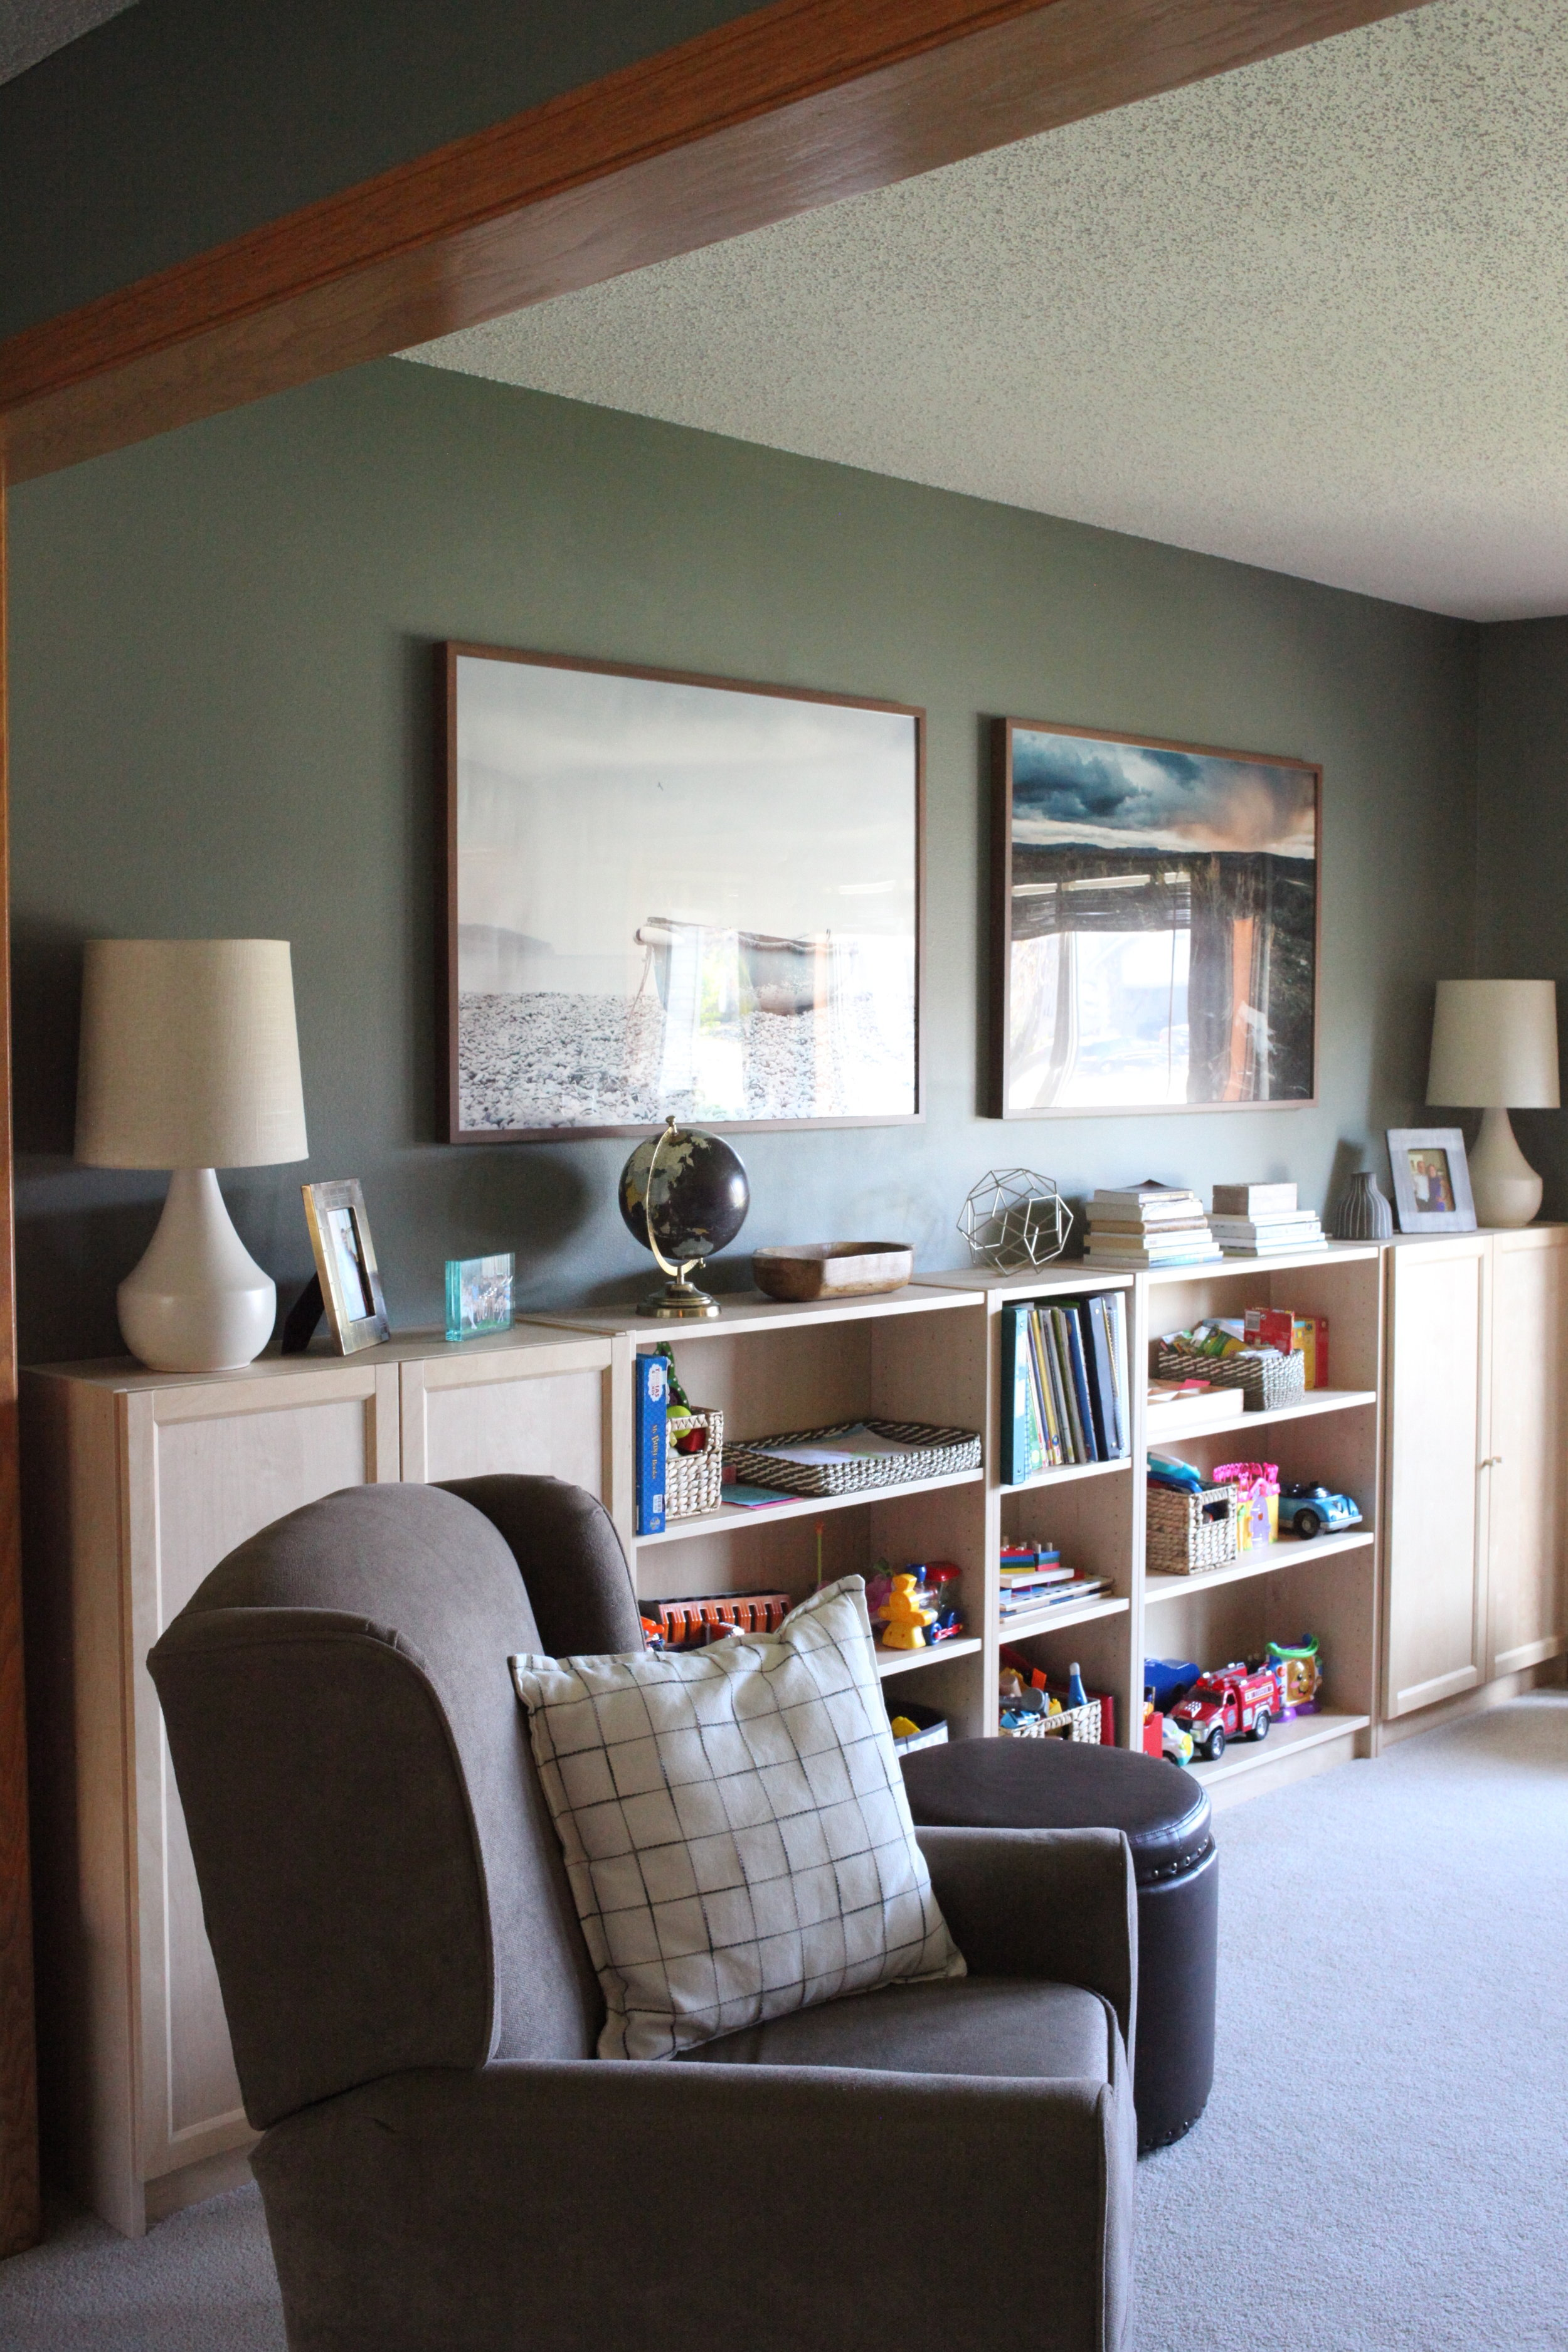 Home school room makeover with large photo art and IKEA Billy bookcase